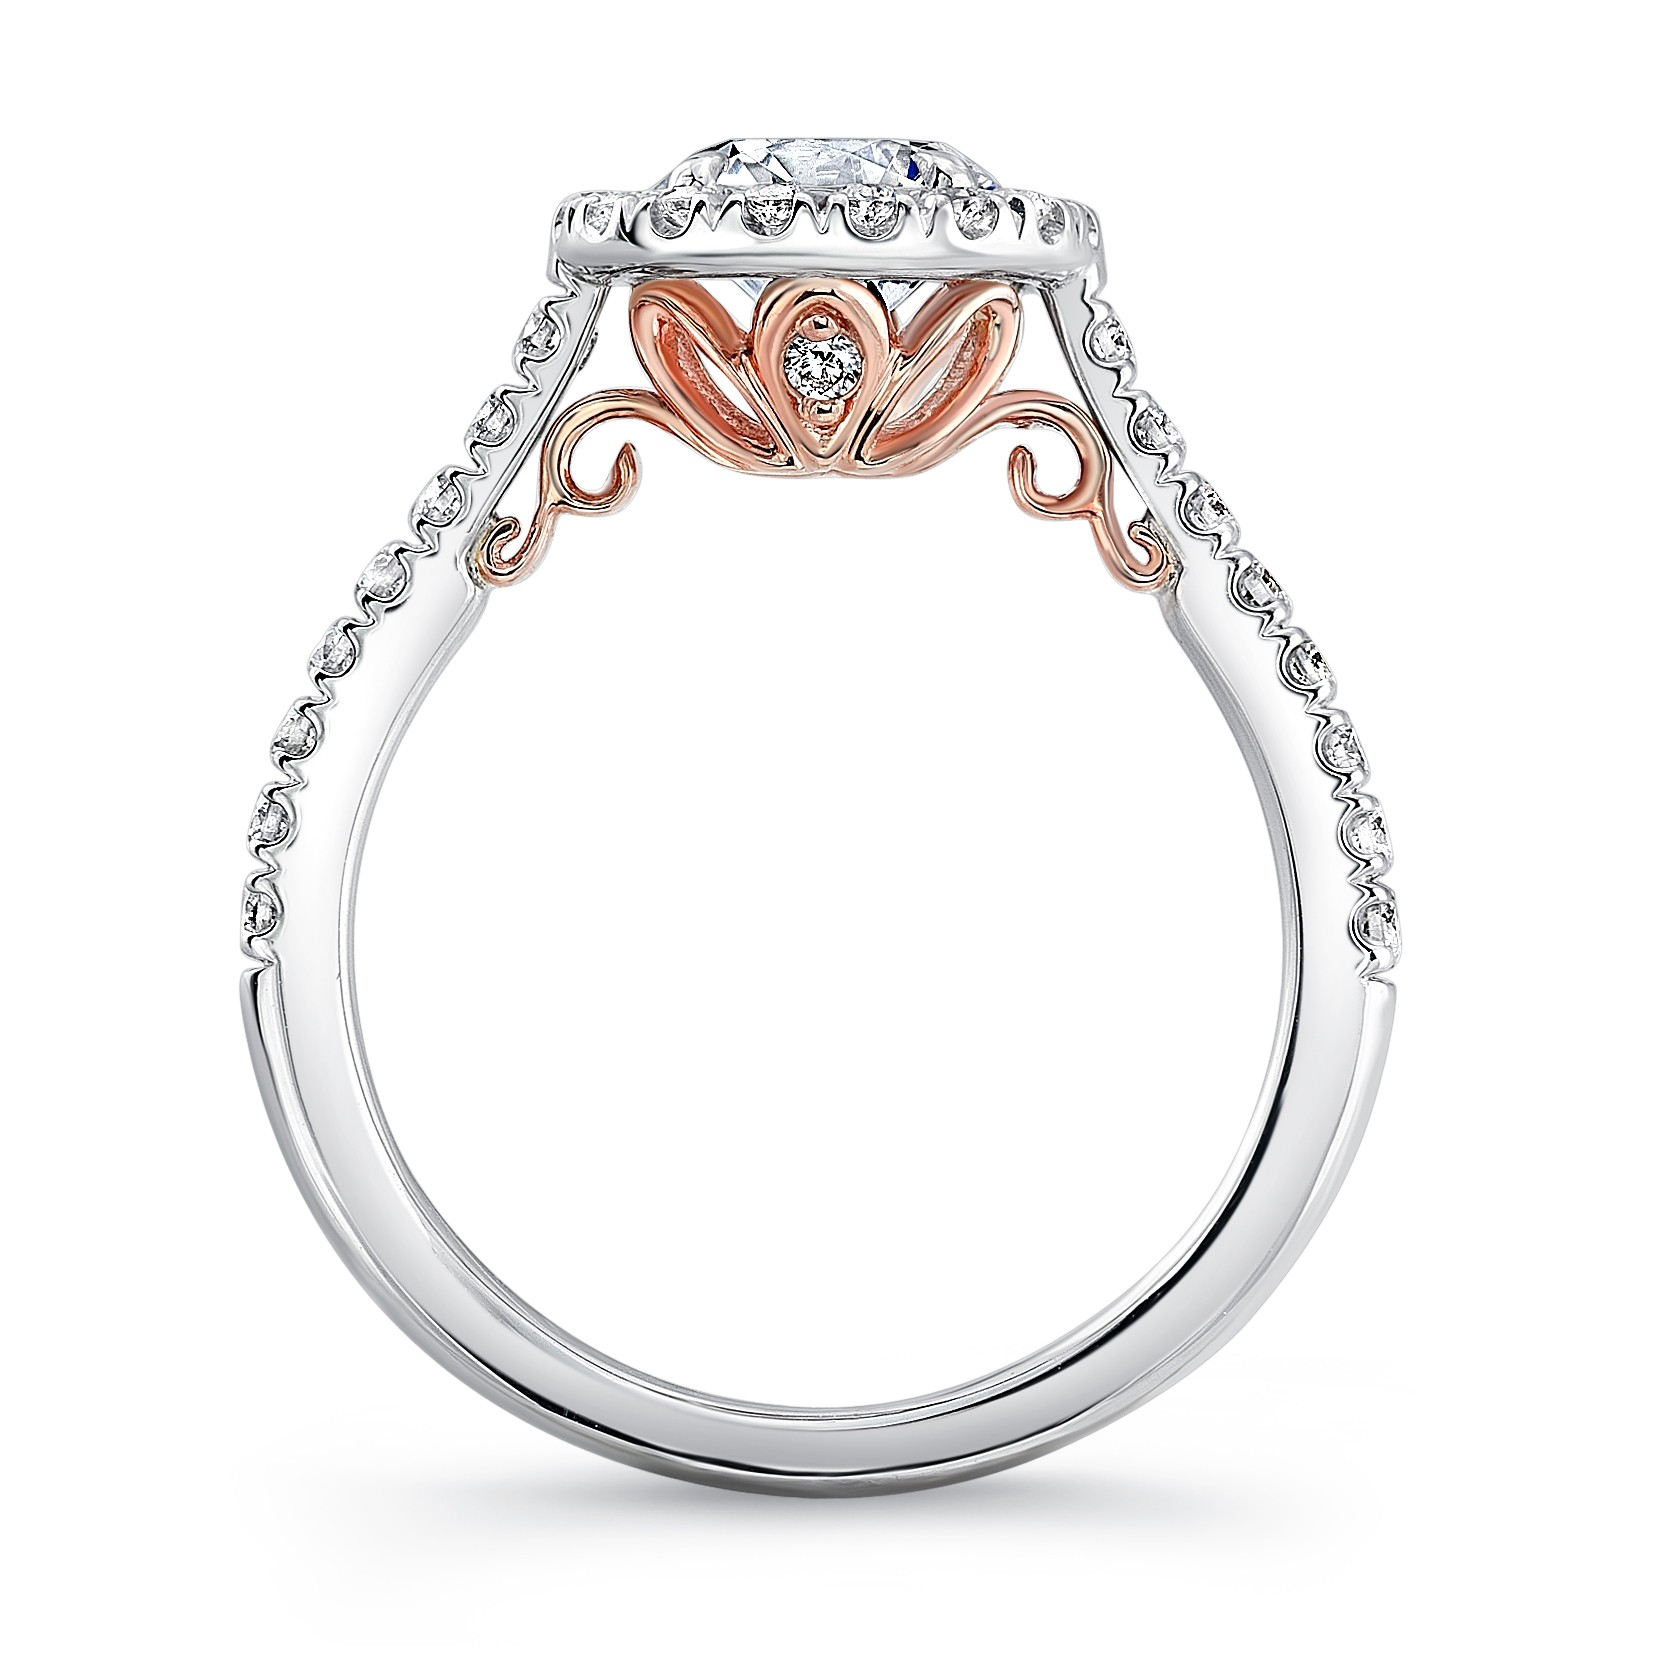 Uneek Quot Fiorire Quot Round Diamond Halo Engagement Ring With